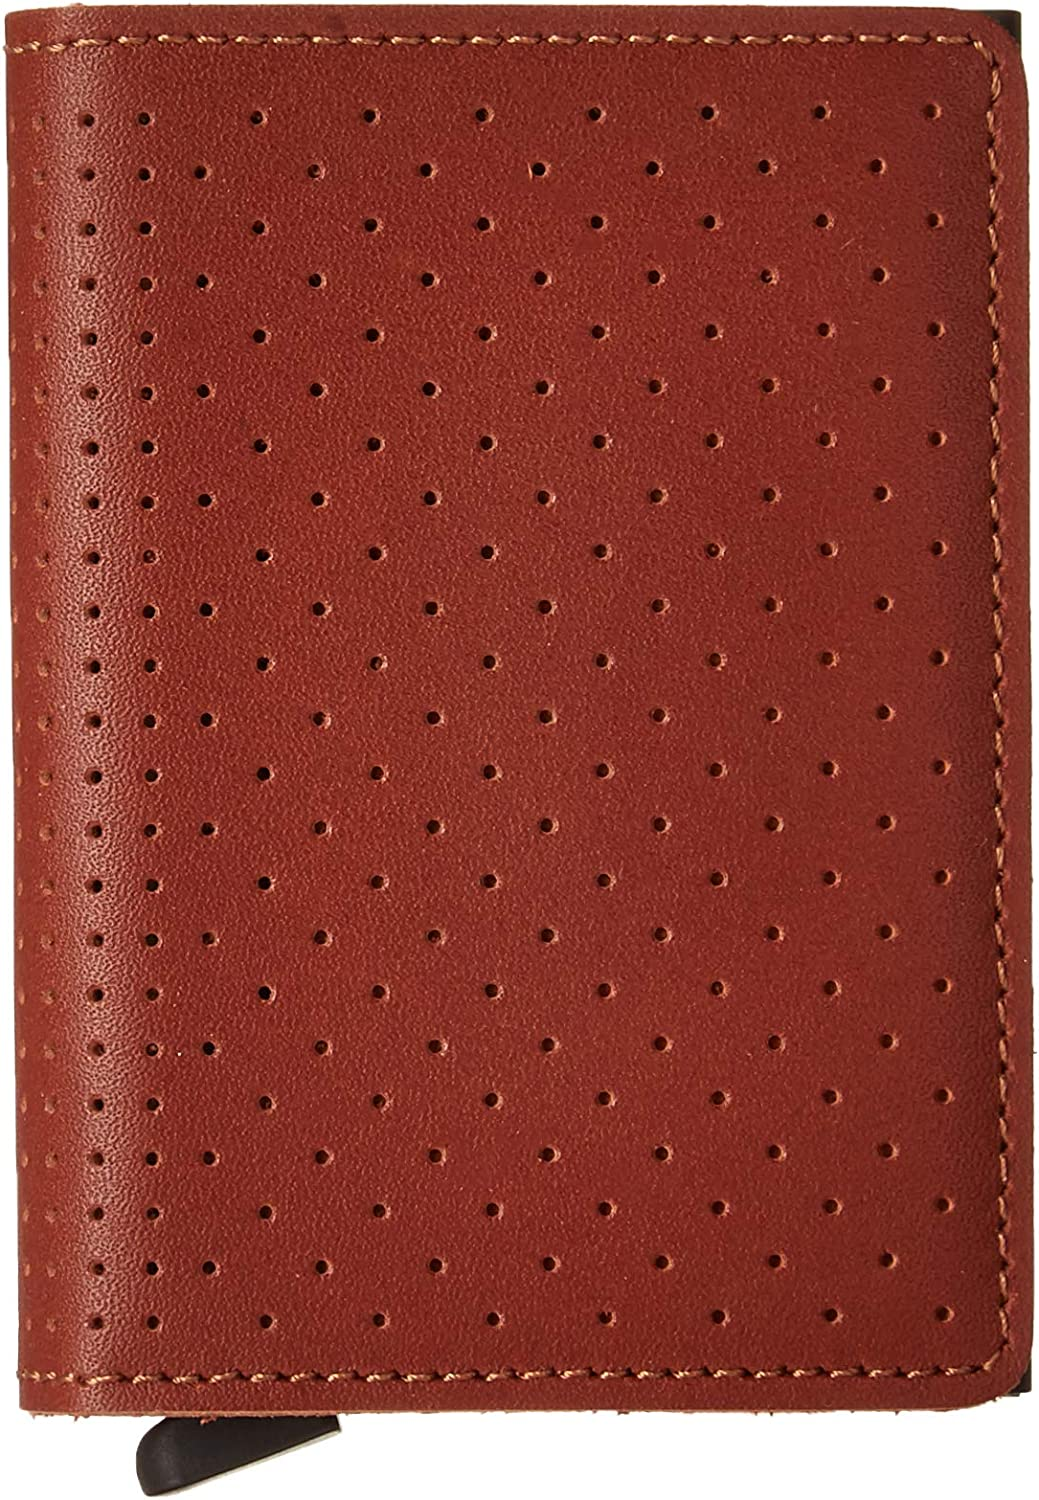 Secrid Slim Wallet Genuine Leather Perforated Cognac Safe Card Case max 12 cards